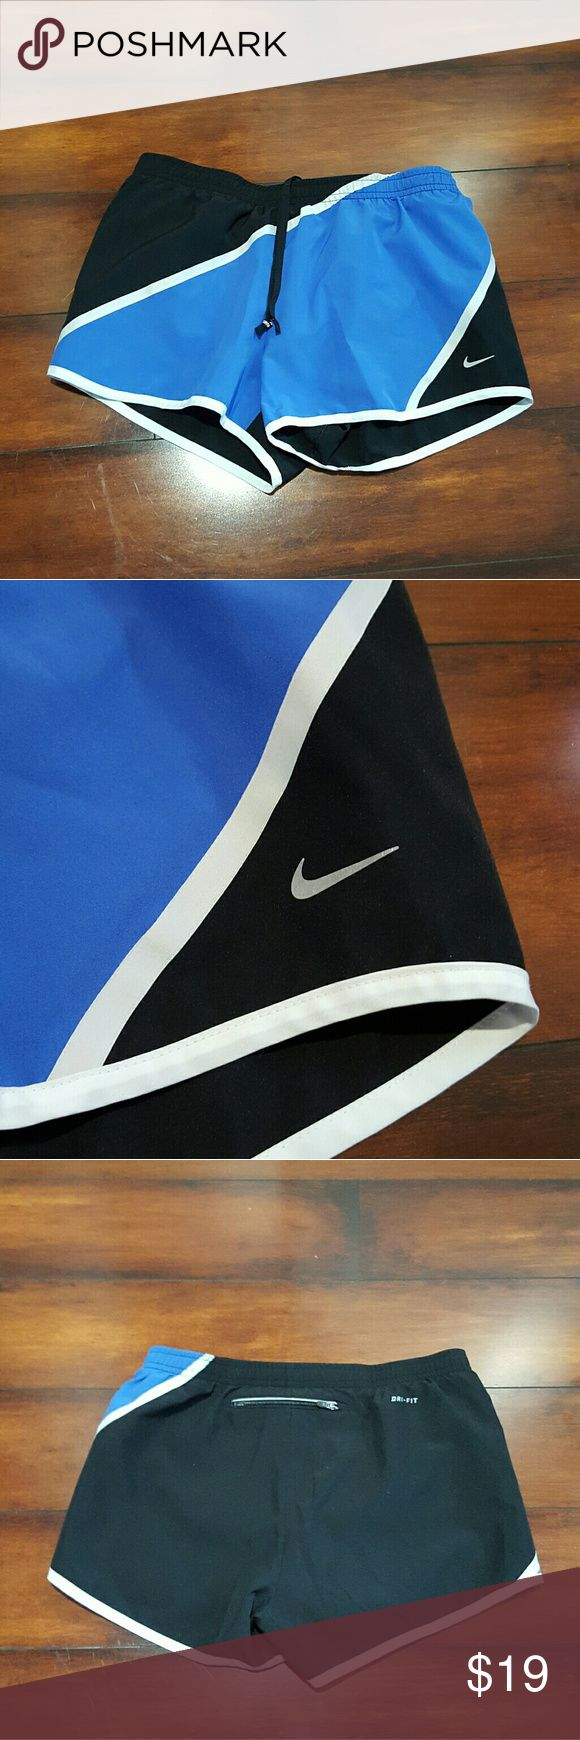 NWOT WOMEN'S NIKE running shorts, size small NWOT Women's black, blue and white Nike running shorts, size small. Nike Shorts